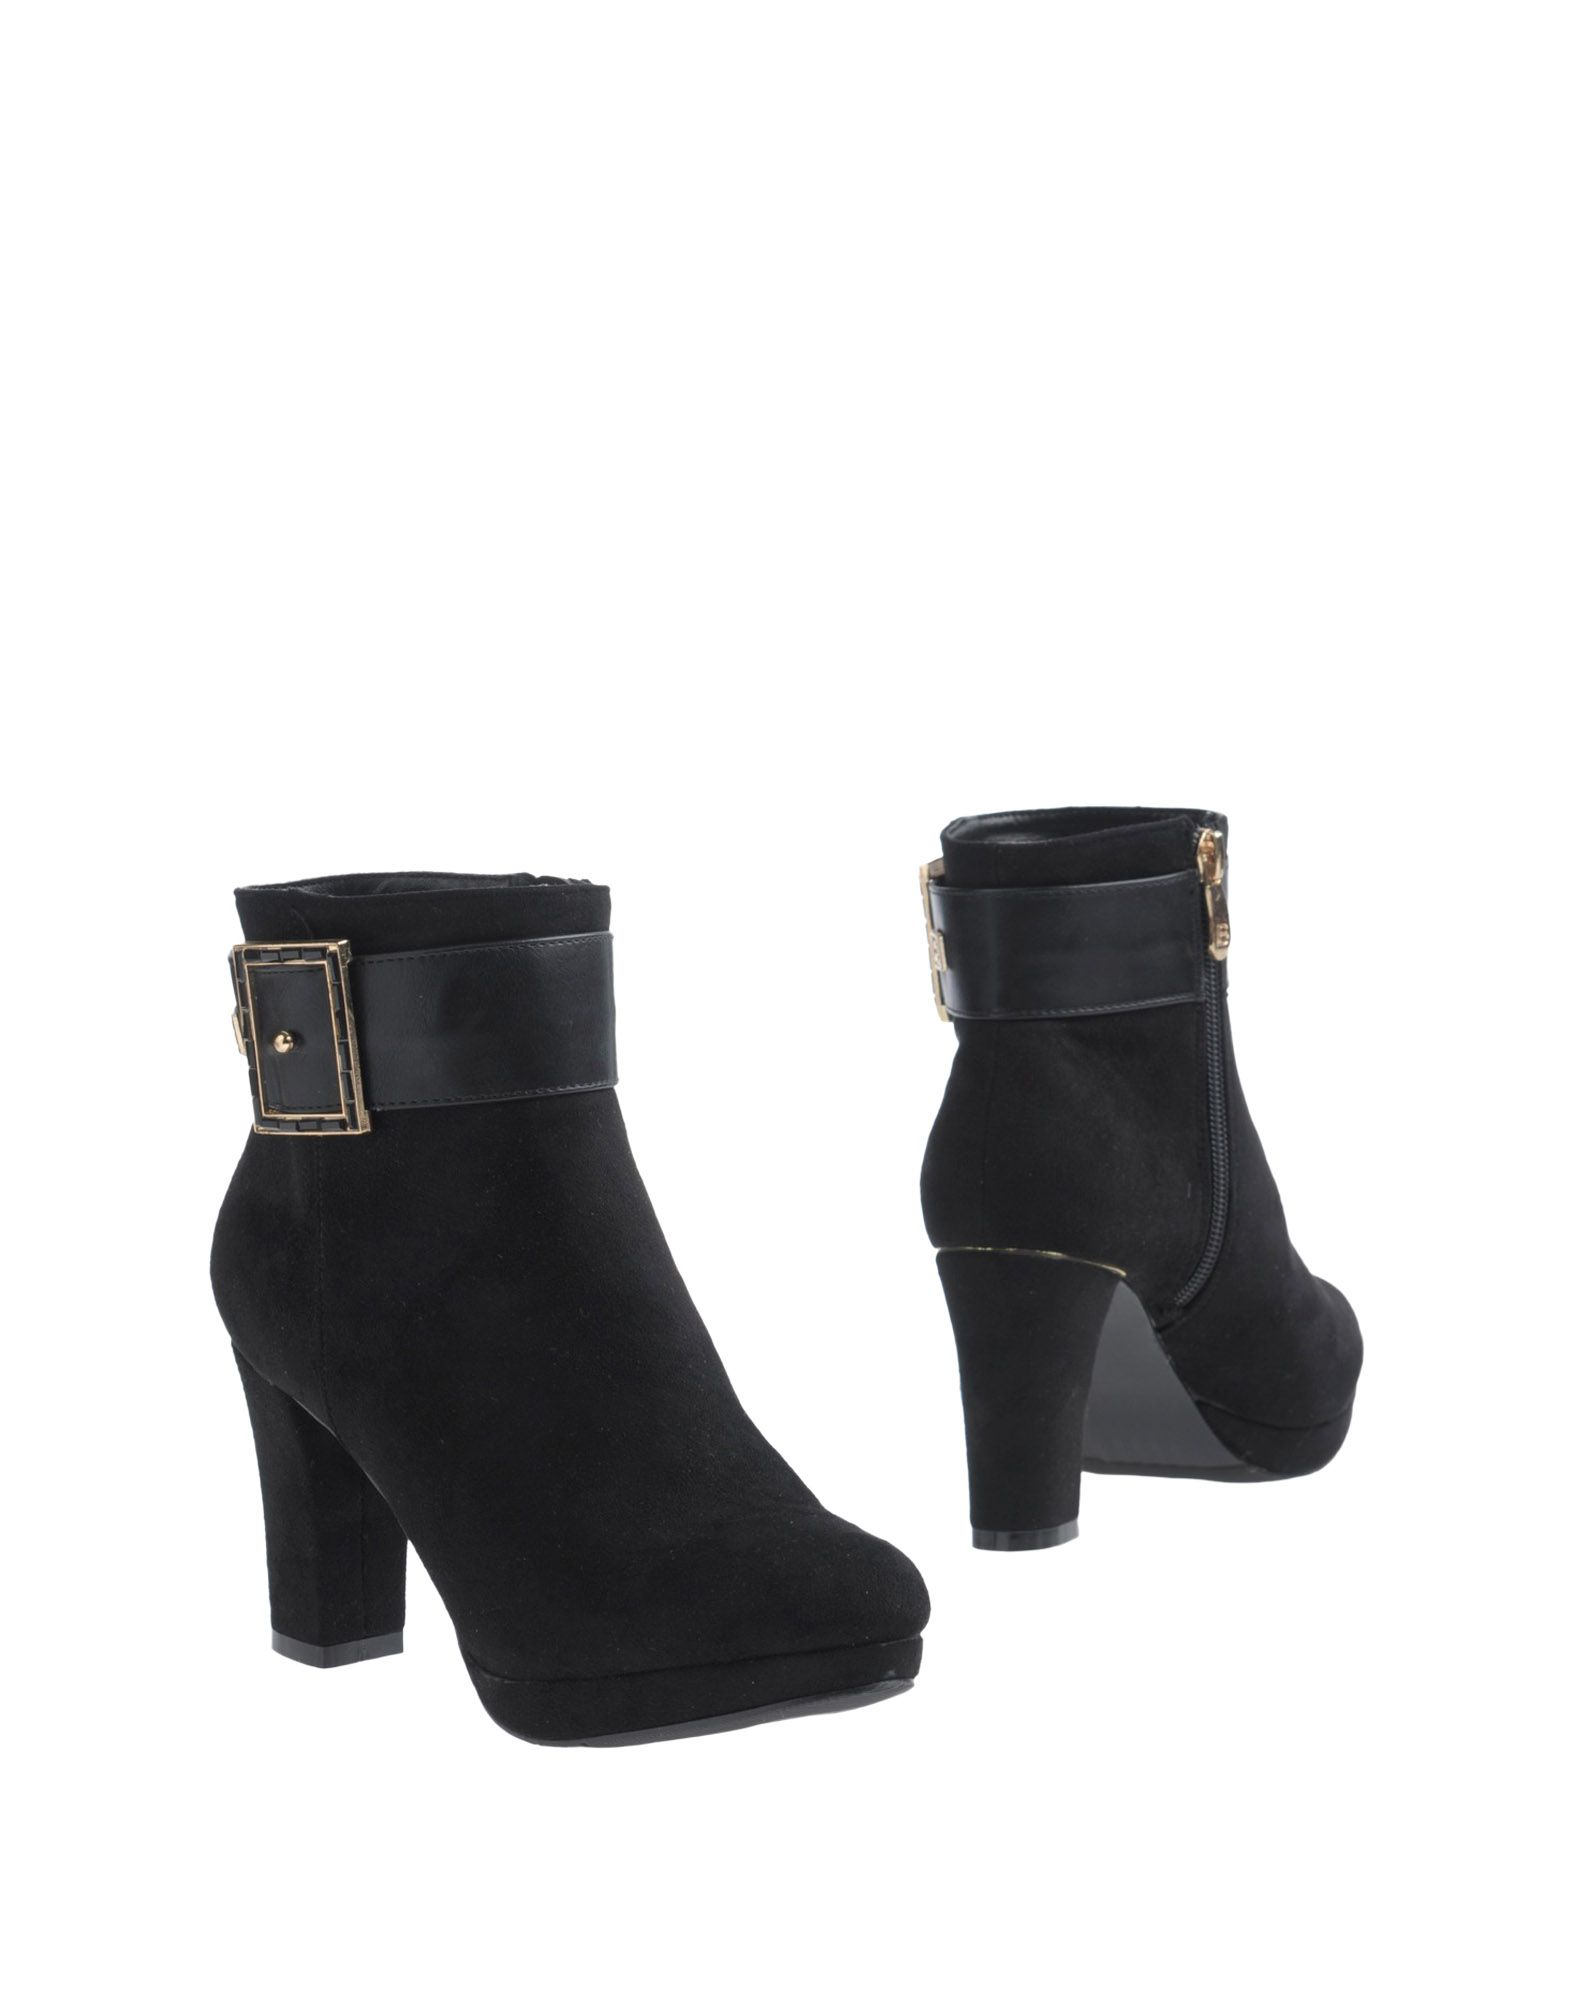 Bottine Laura Biagiotti Femme - Bottines Laura Biagiotti sur